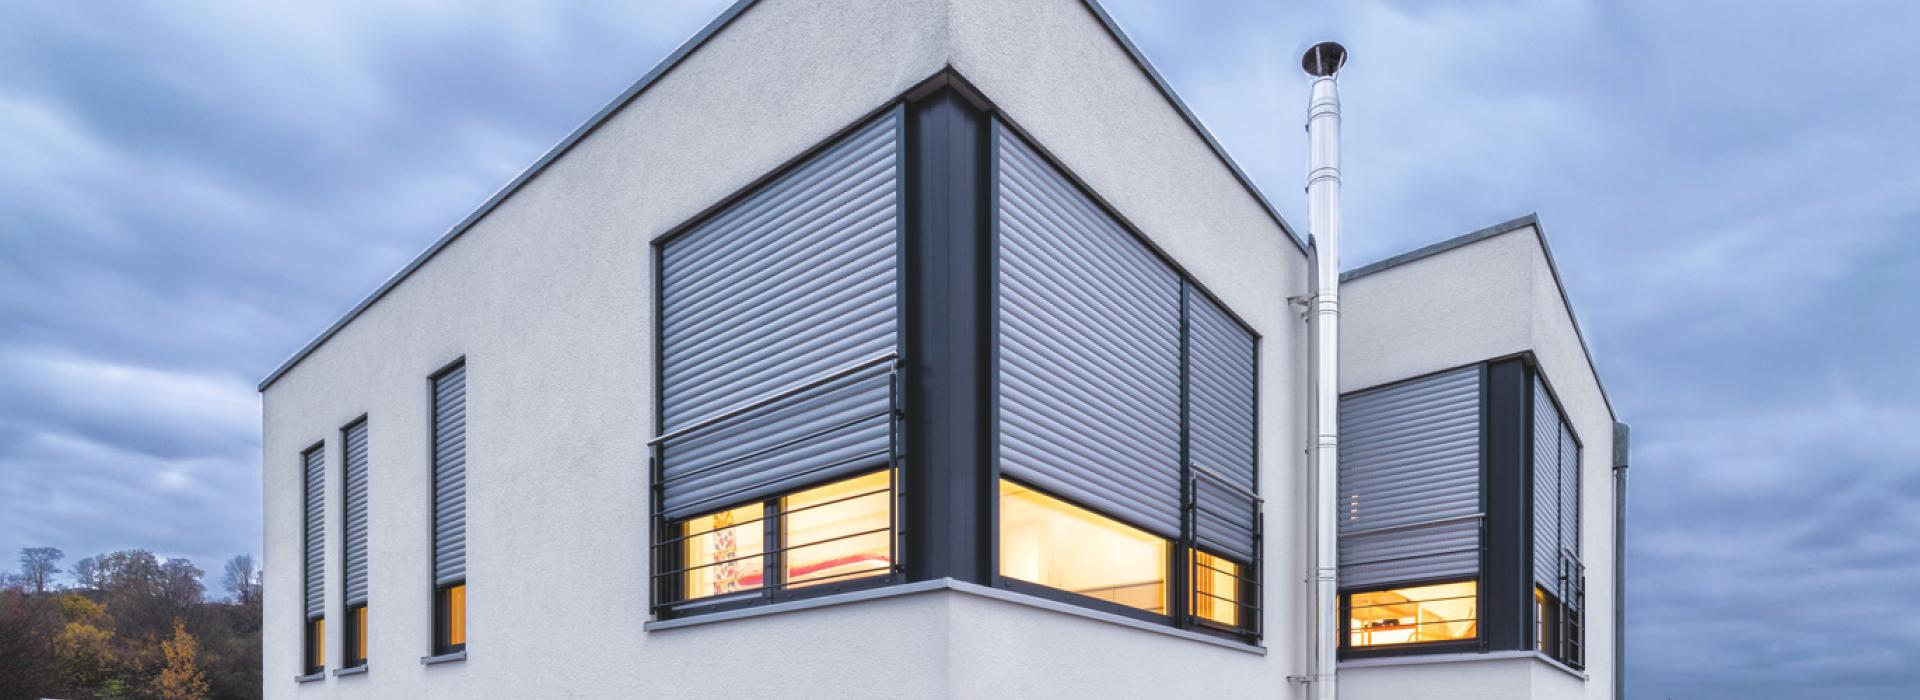 Single-family home detailed view window with nearly closed roller shutters